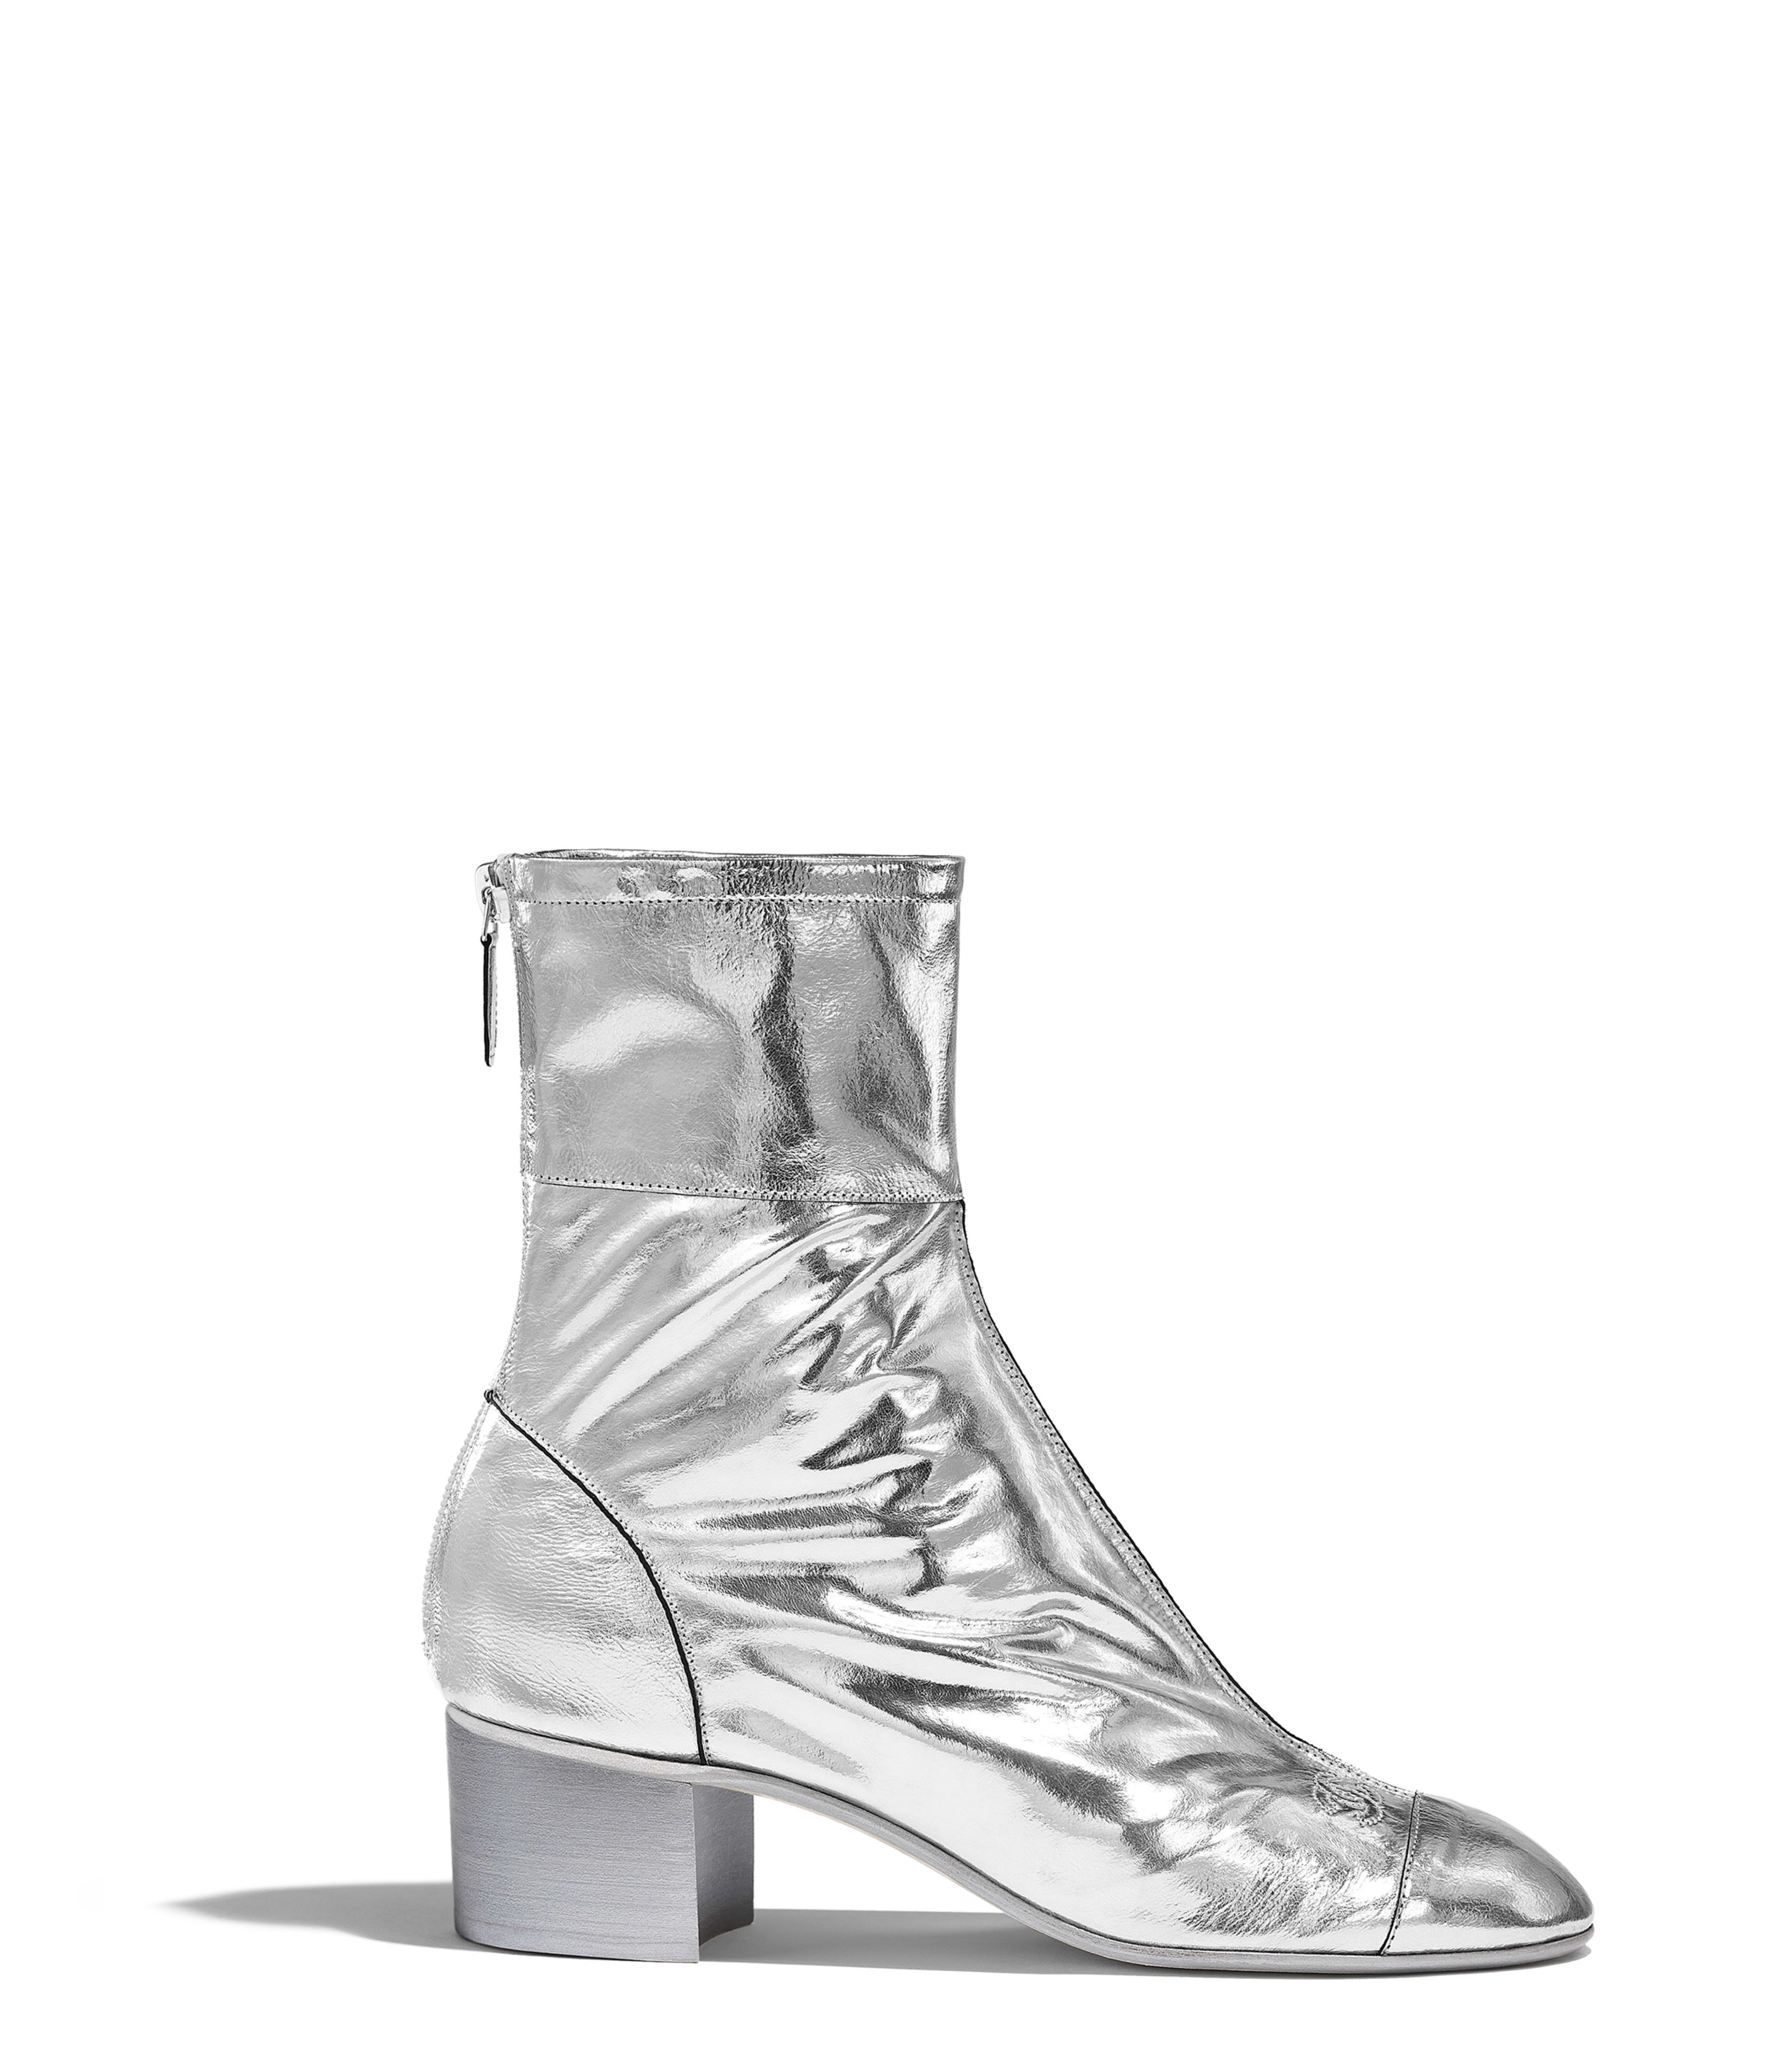 6d18a86478c Laminated Goatskin Silver Mary Janes